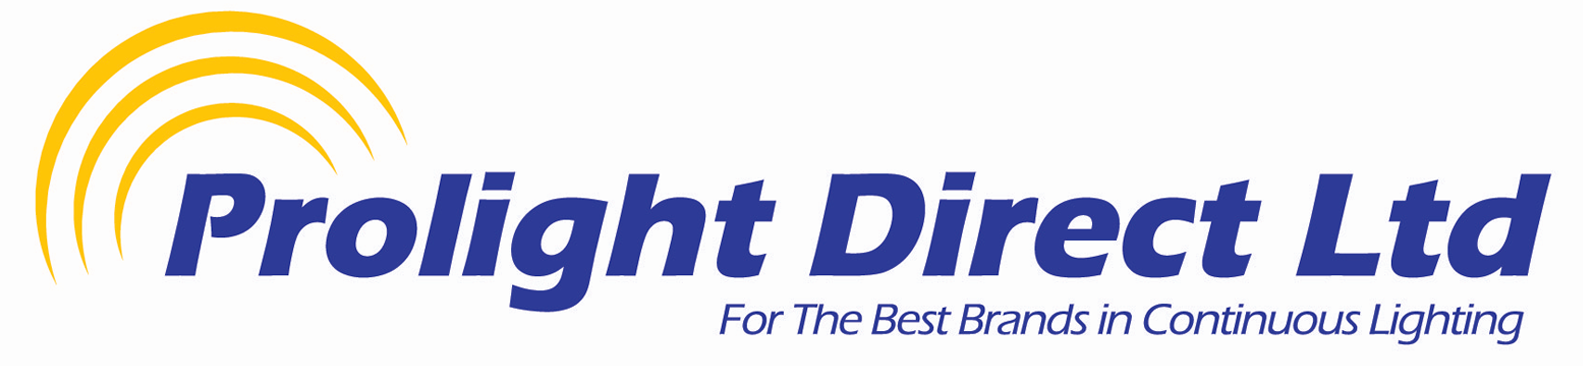 Prolight Direct